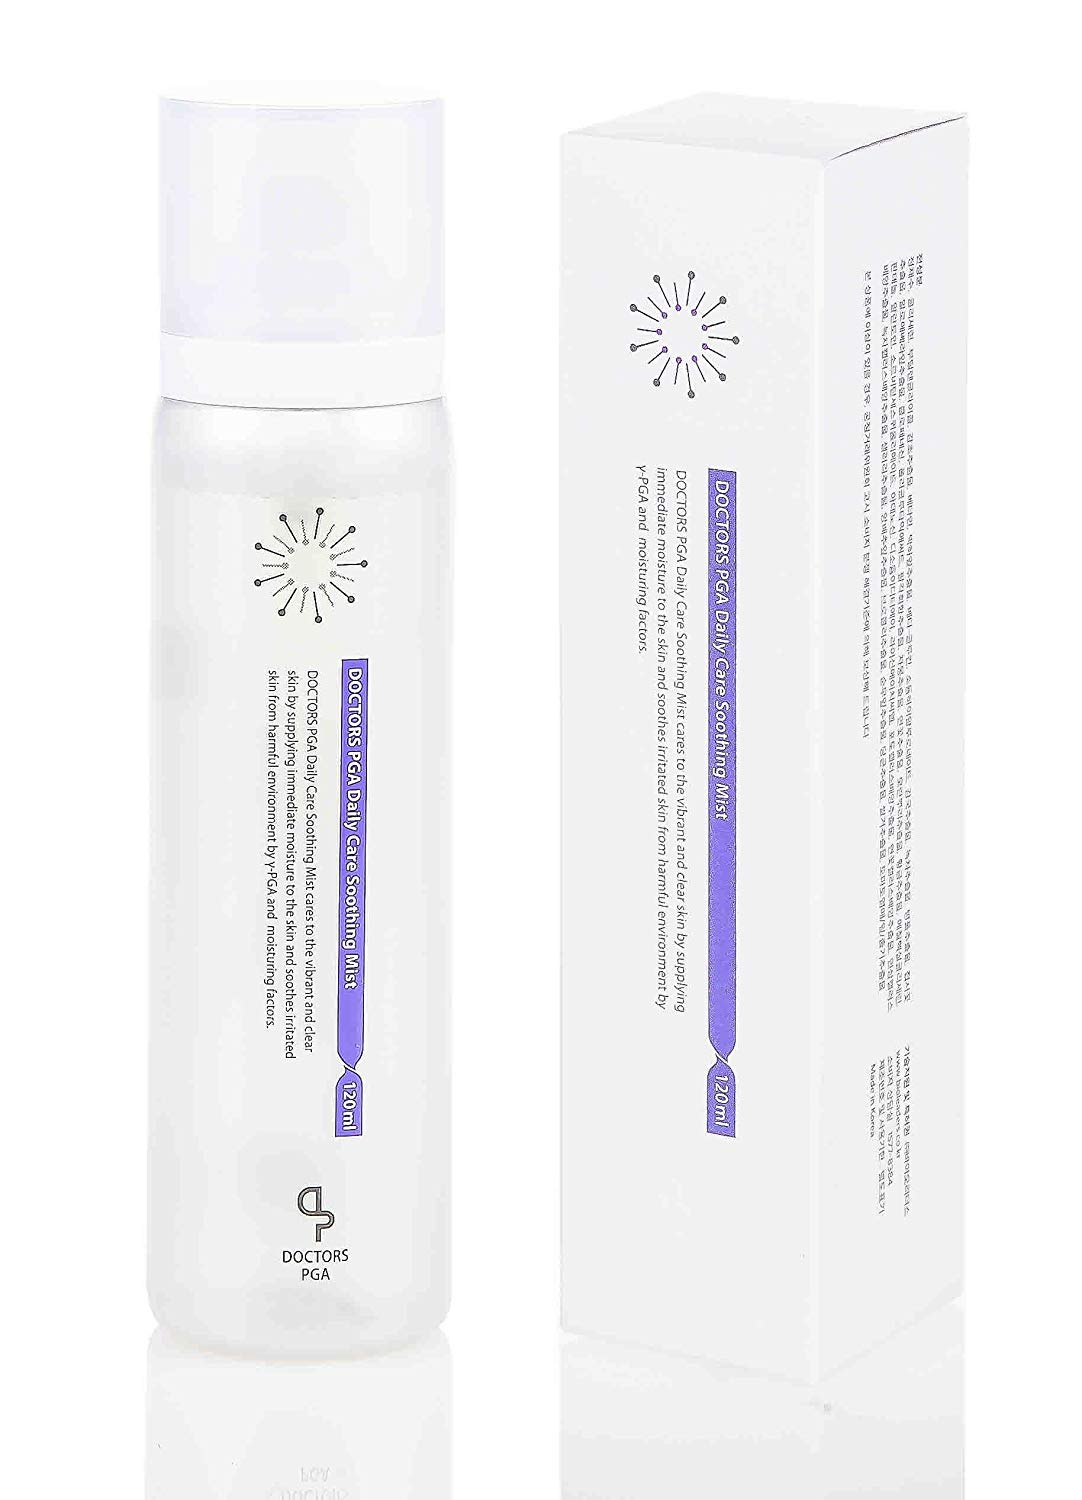 [DOCTORS PGA] Daily Care Soothing Mist (120ml) - Feel Instantly Renewed, Anytime, Anywhere, Daily Relaxing Facial Mist, Aloe Vera Leaf, Adenosine, Centella Asiatica Leaf Extract, Polyglutamic Acid